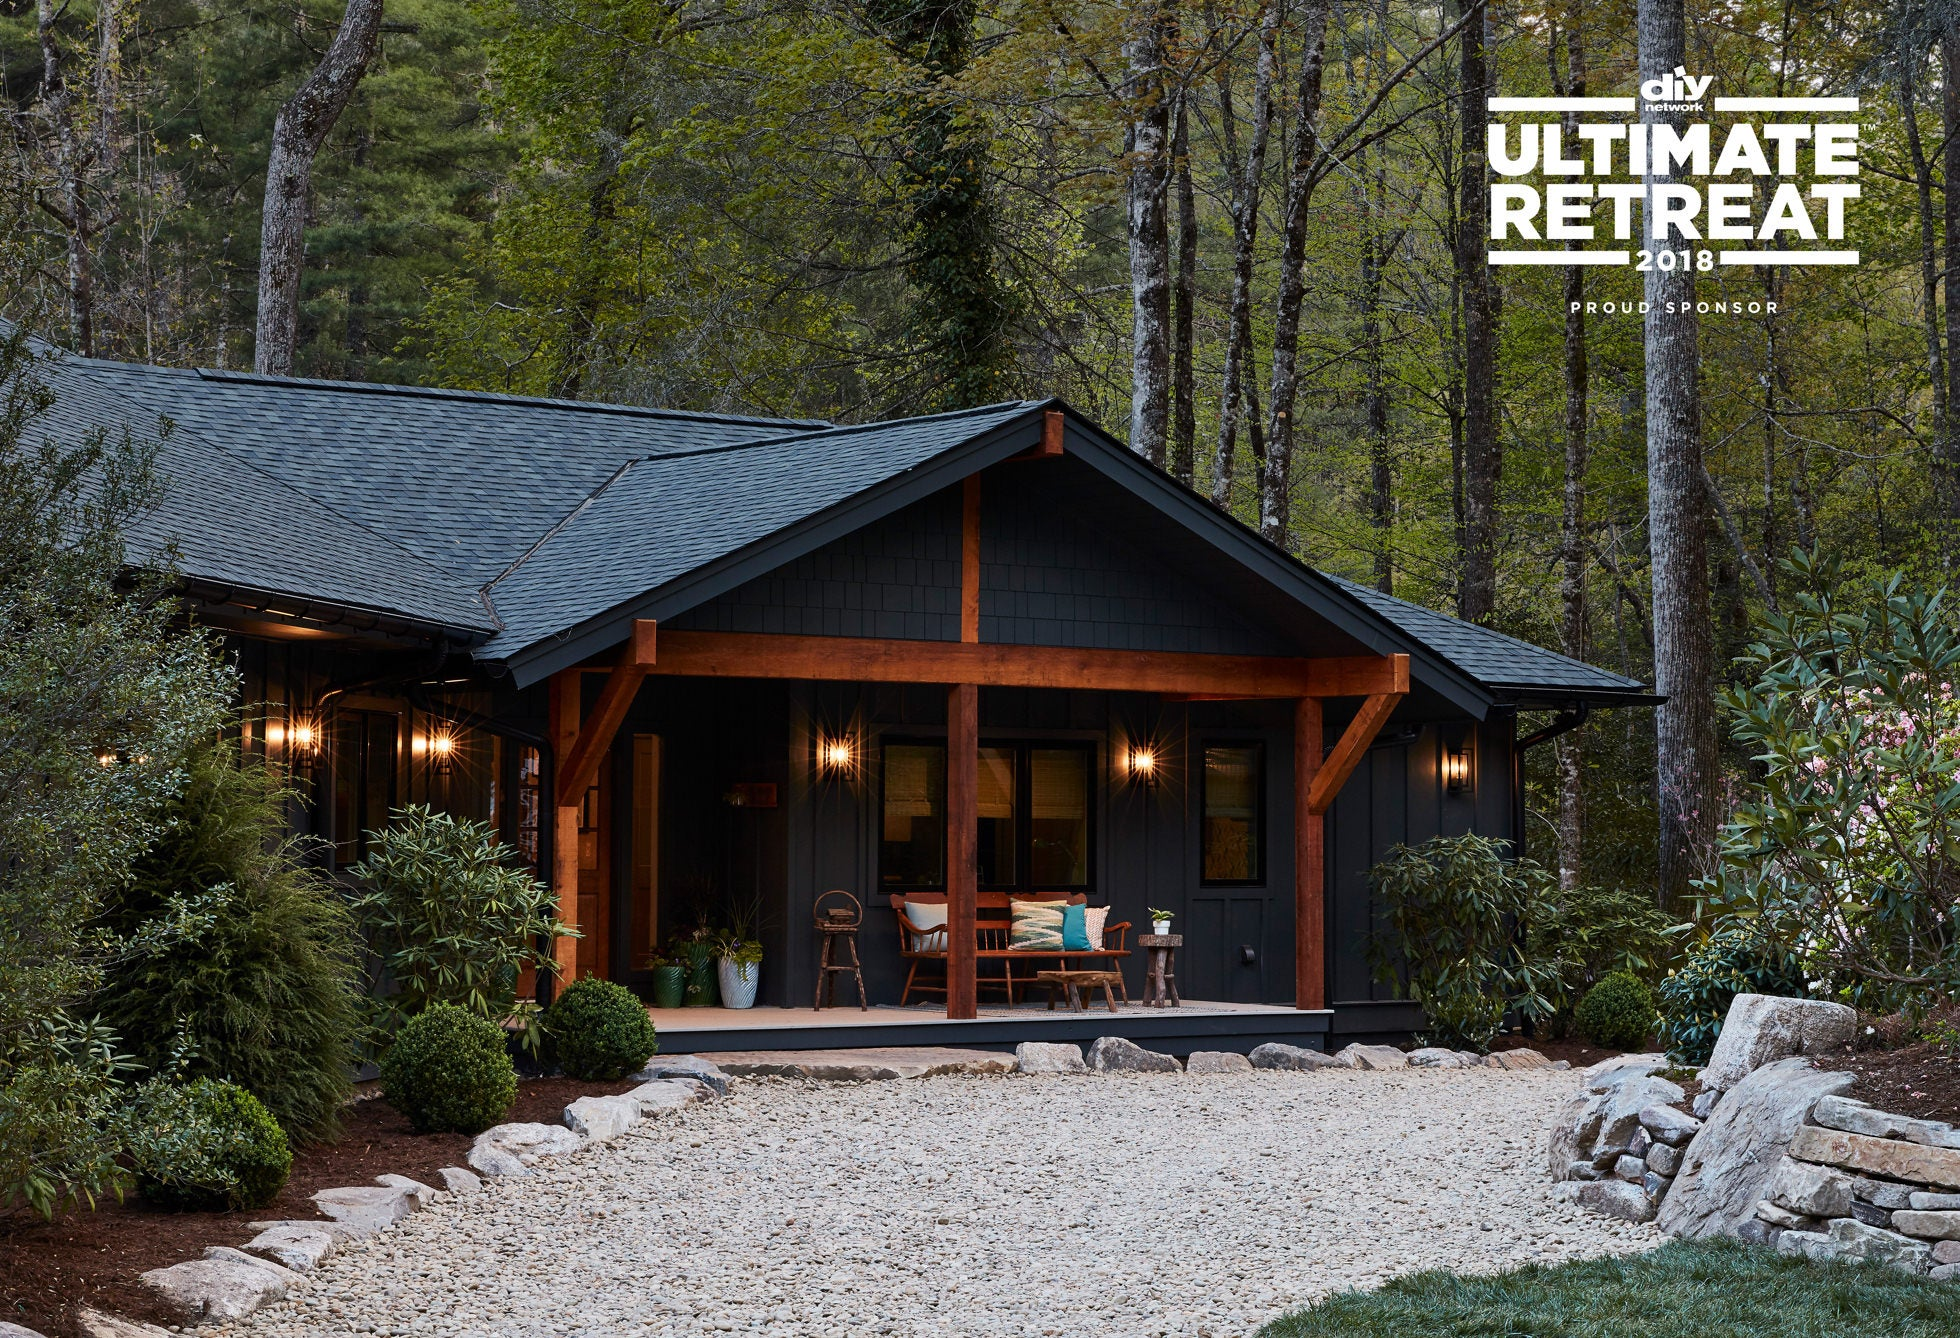 DIY Network Ultimate Retreat™ 2018 front of home in the Blue Ridge Mountains